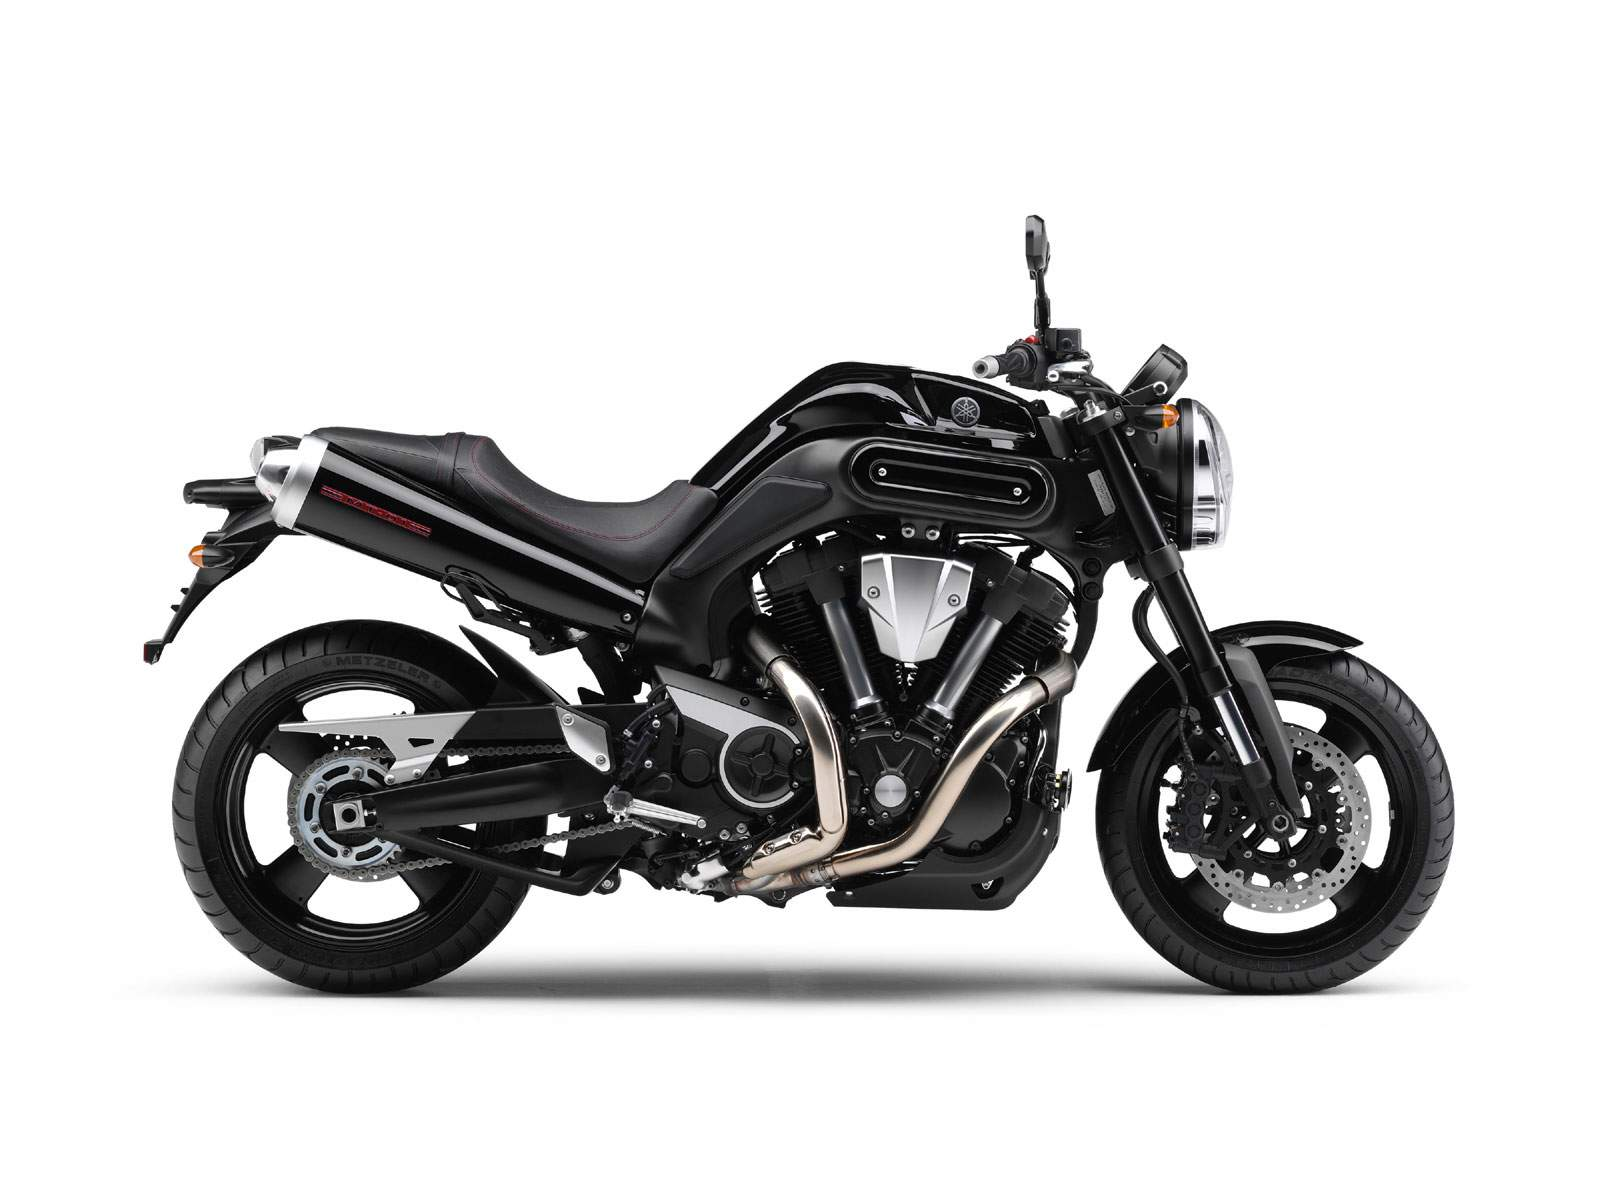 yamaha mt 01 specs 2009 2010 2011 2012 autoevolution. Black Bedroom Furniture Sets. Home Design Ideas